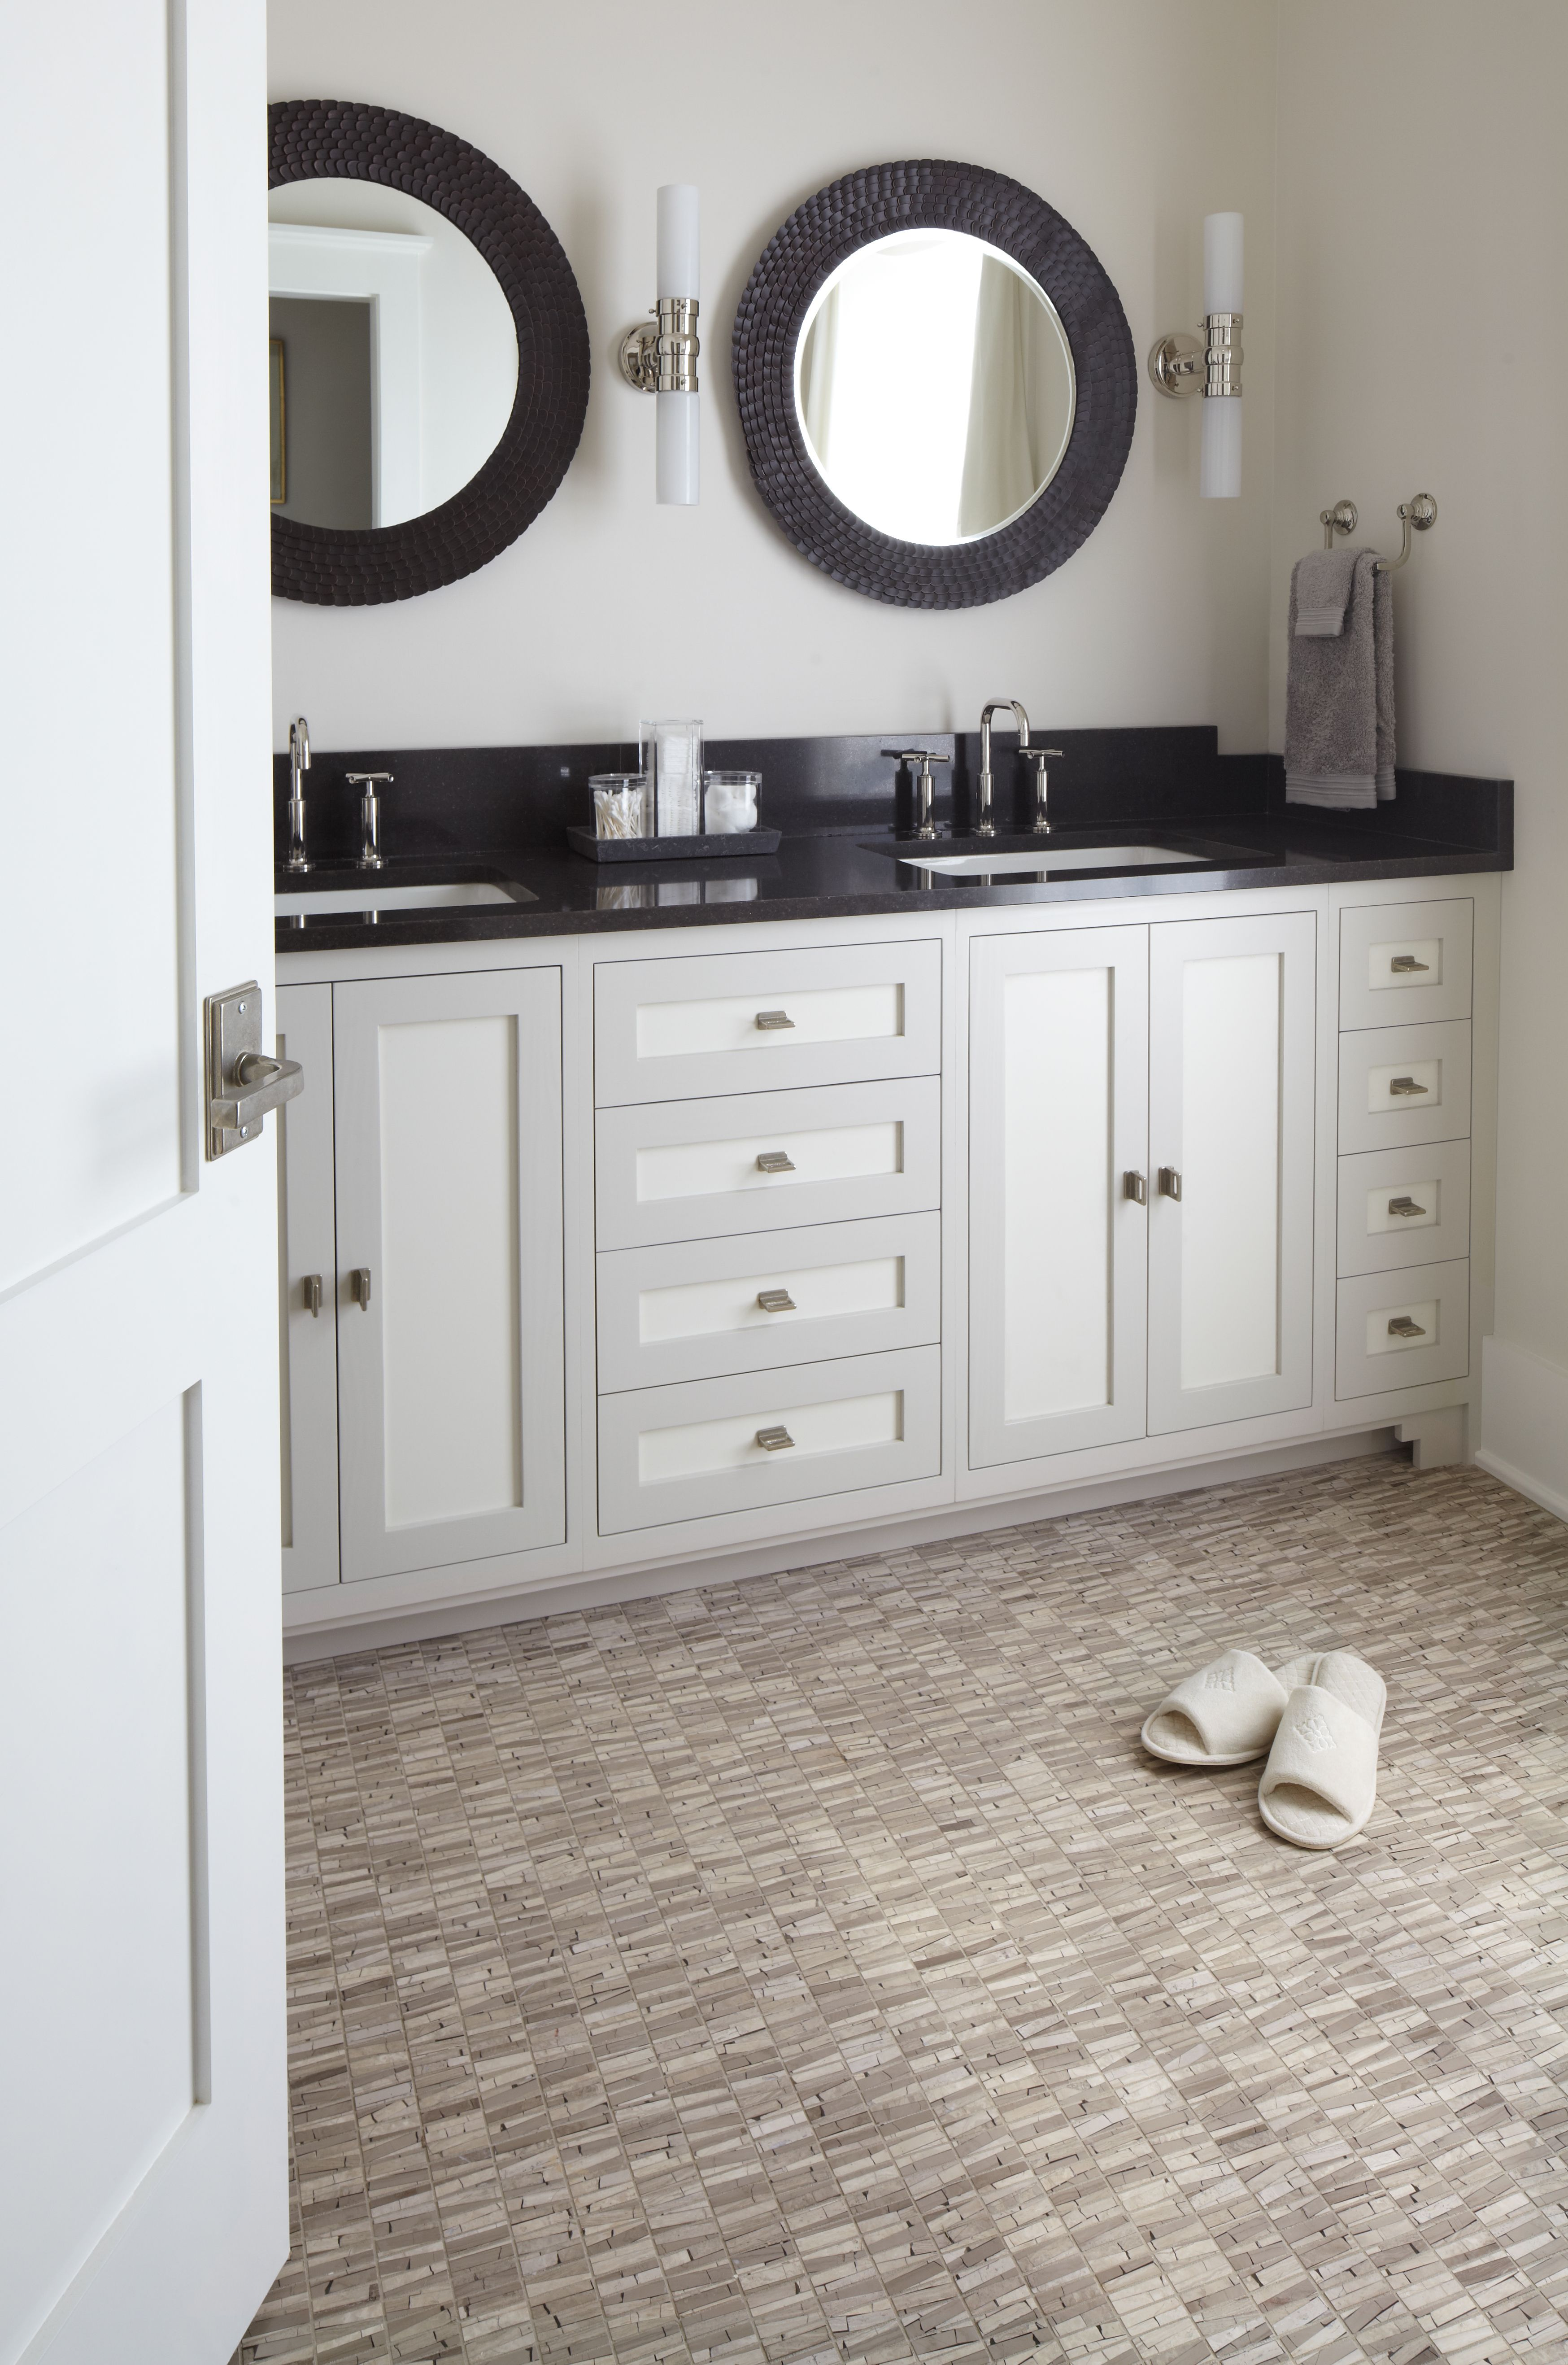 ANN SACKS Selvaggio athens mosaic in honed finish (shown in ...